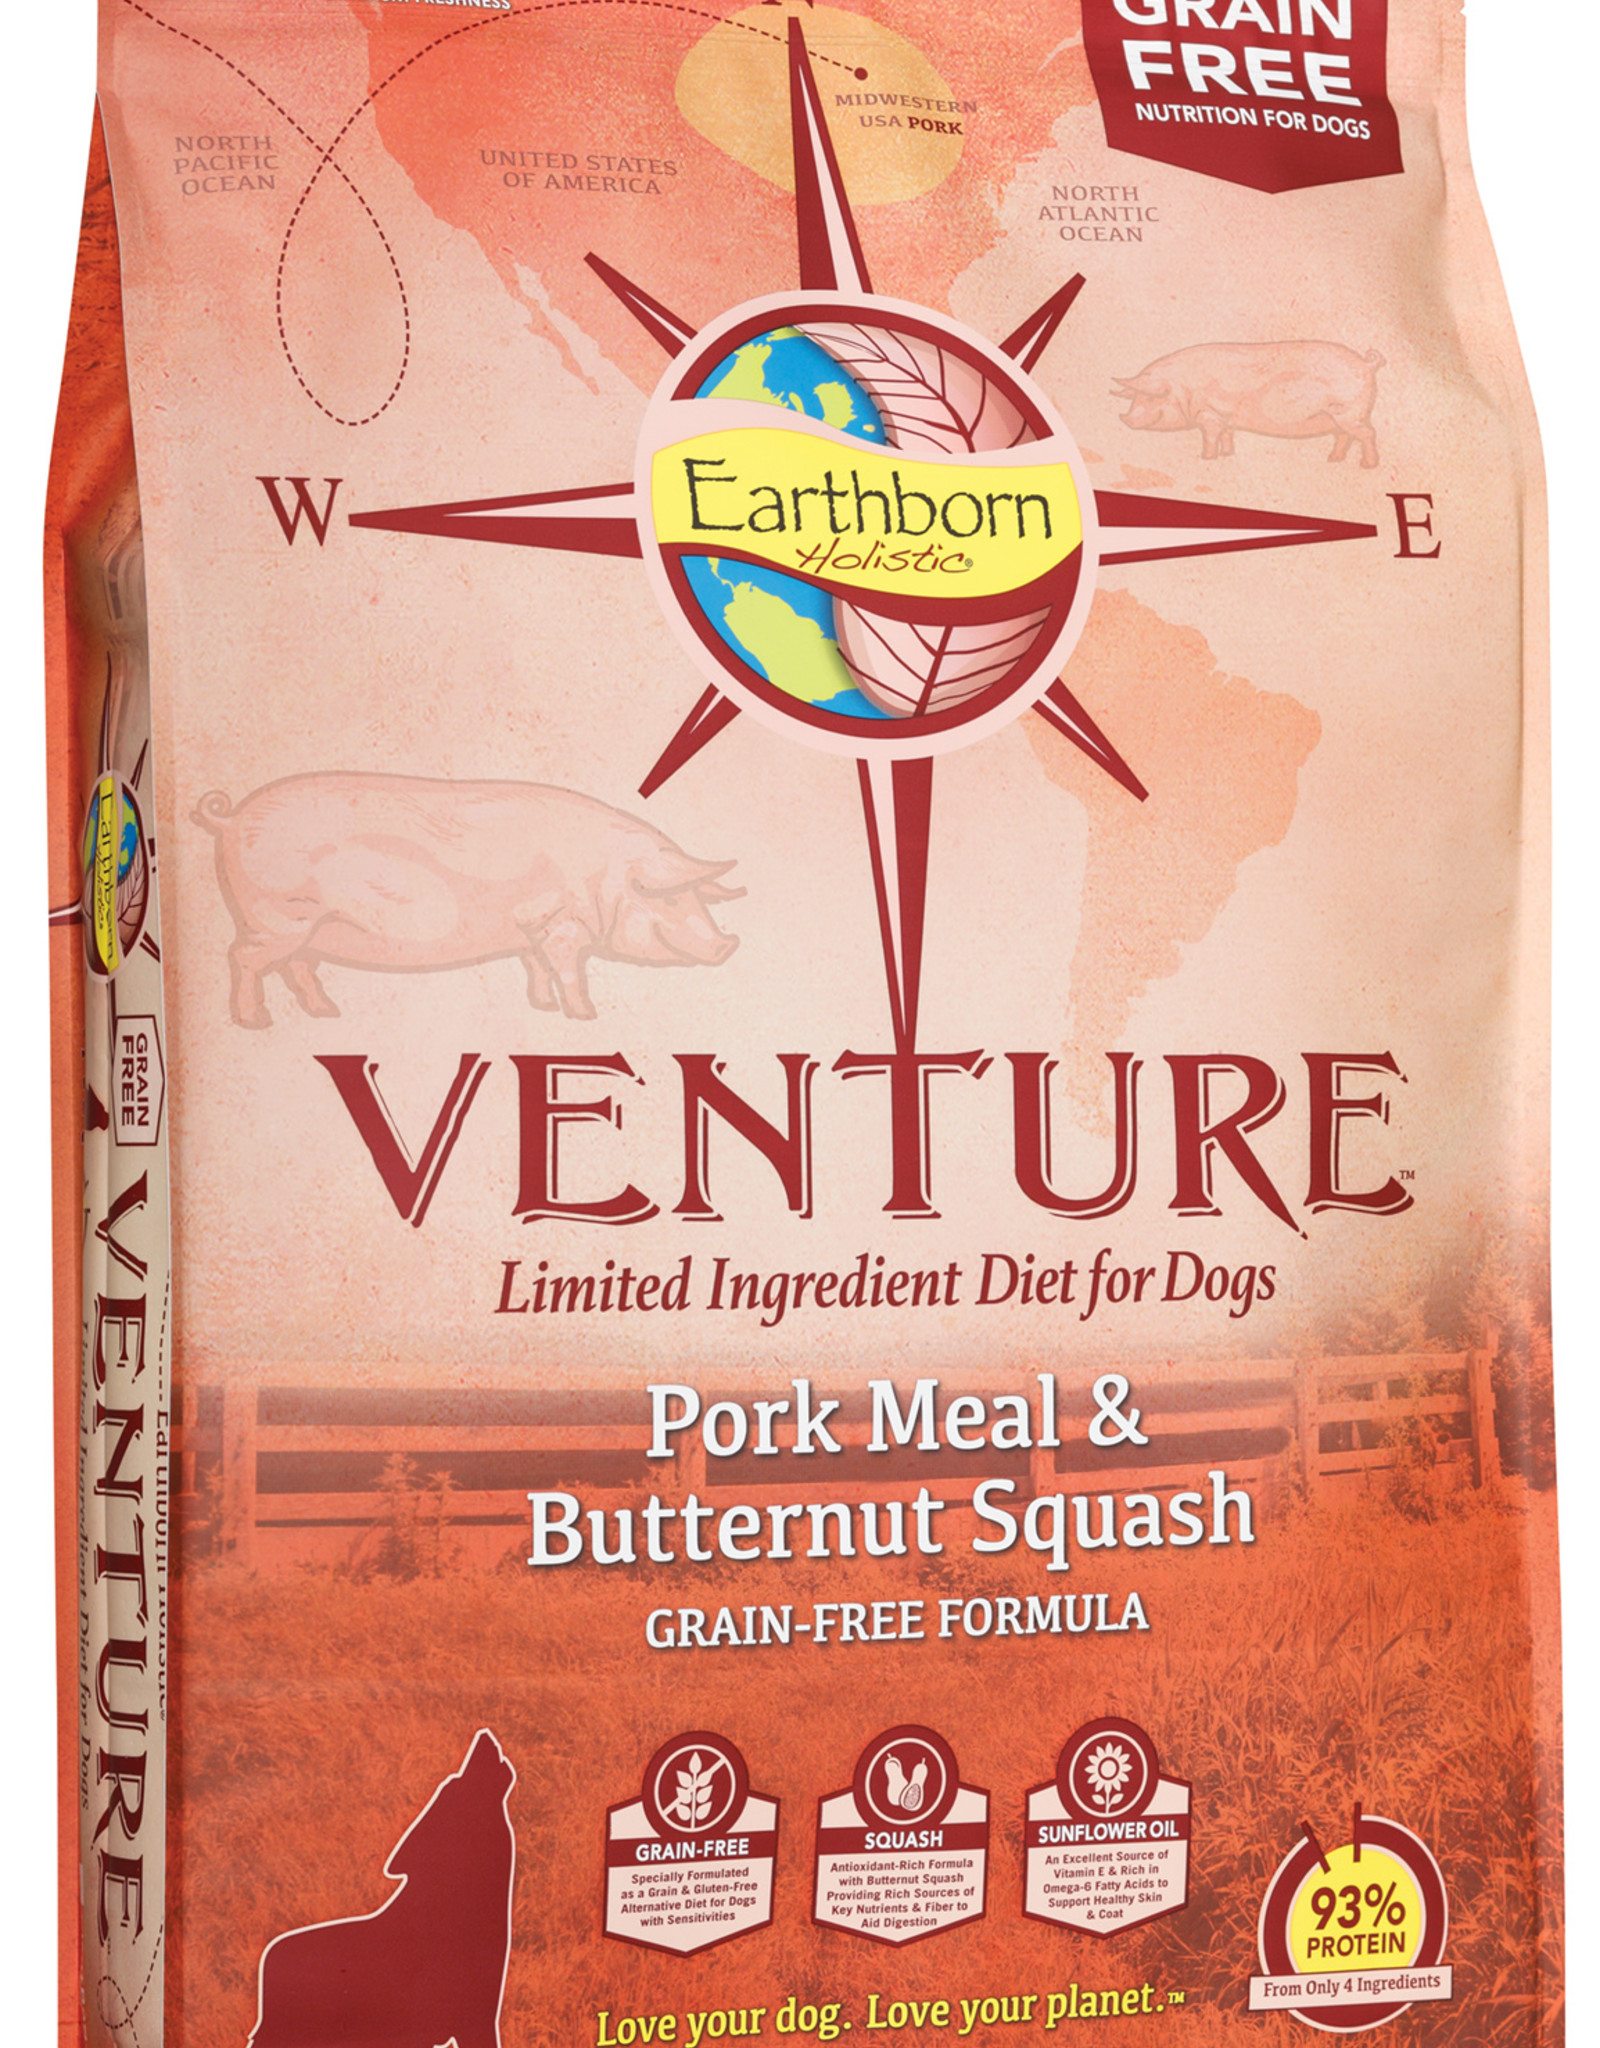 Earthborn Earthborn Venture Dog Food Pork Meal & Butternut Squash